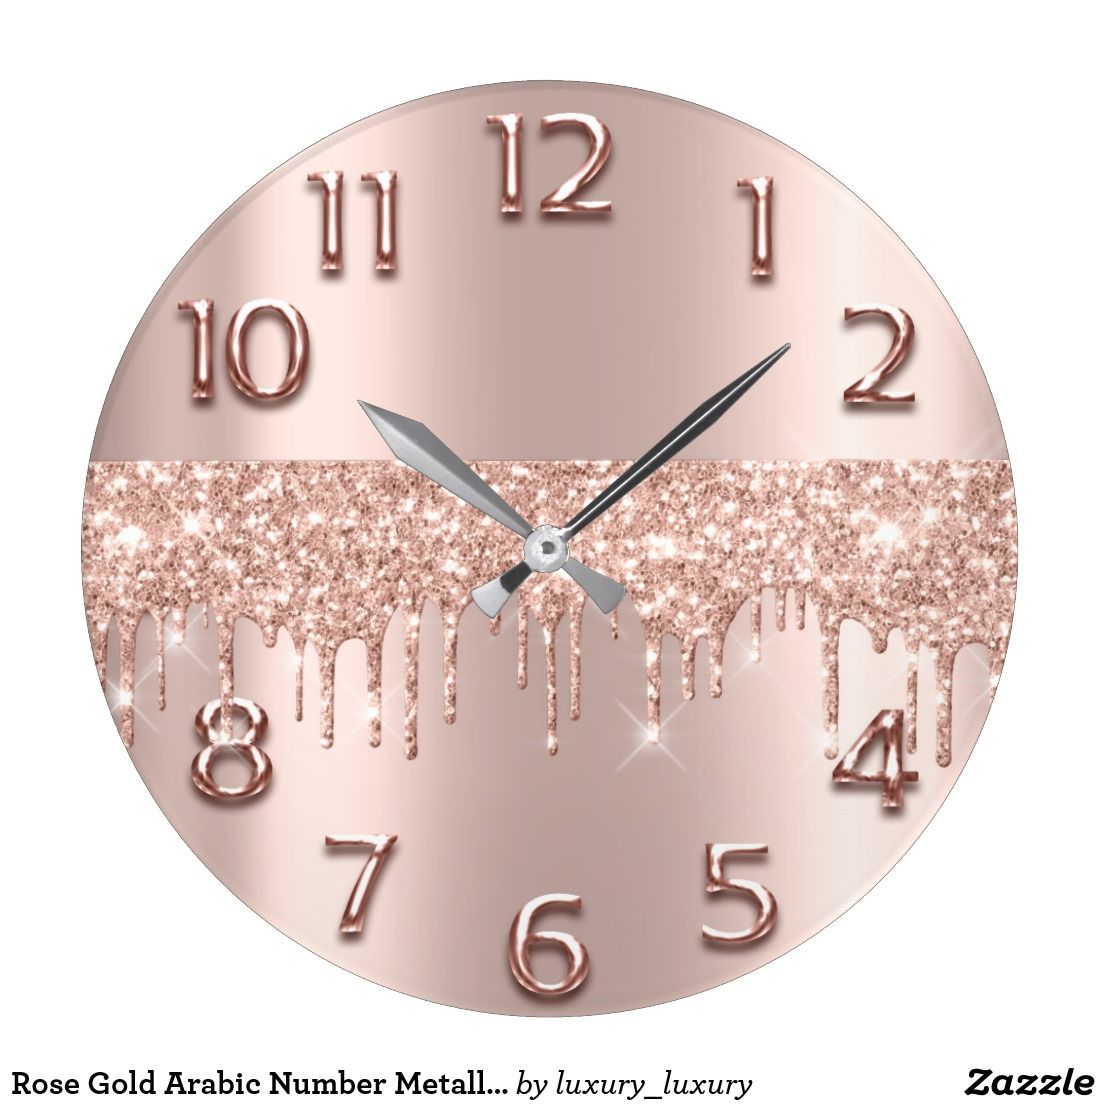 Rose Gold Arabic Number Metallic Blush Glitter Large Clock   Zazzle com is part of Rose gold bedroom decor - Shop Rose Gold Arabic Number Metallic Blush Glitter Large Clock created by luxury luxury  Personalize it with photos & text or purchase as is!